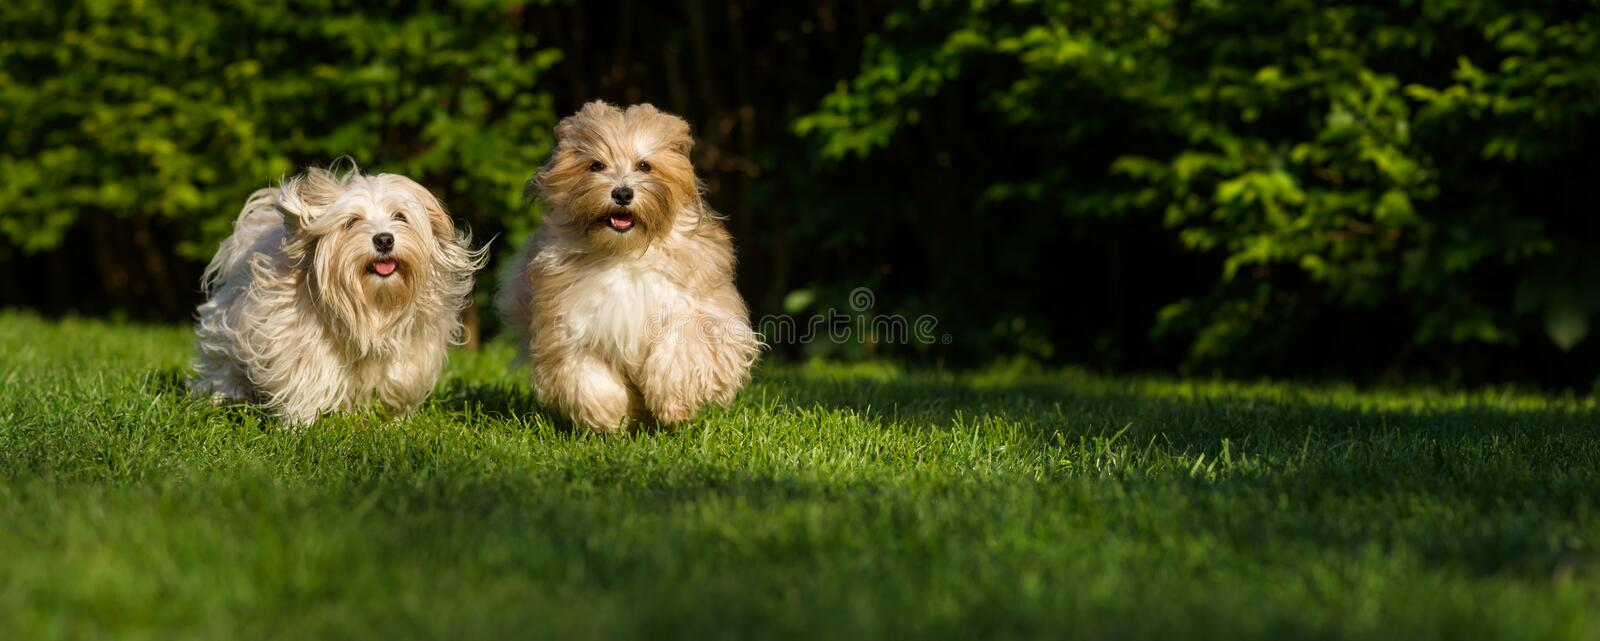 Two happy havanese dog is running towards the camera in the grass. Wide banner format stock image